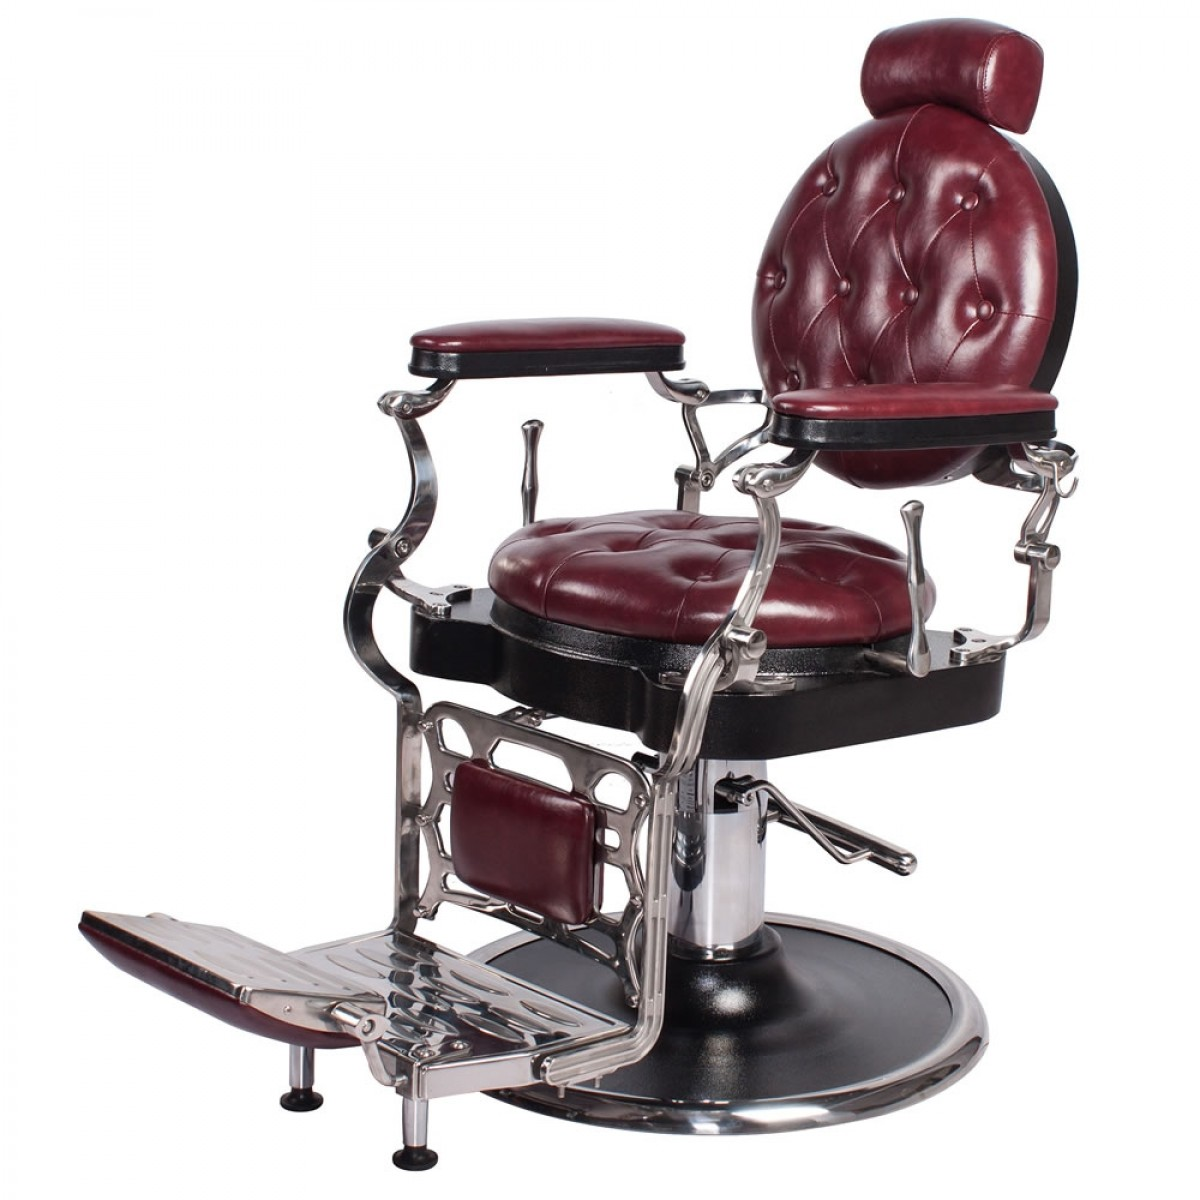 """JUSTINIAN"" Barber Chair manufacturers, Barber Chair Suppliers, Barber Chair Wholsalers"